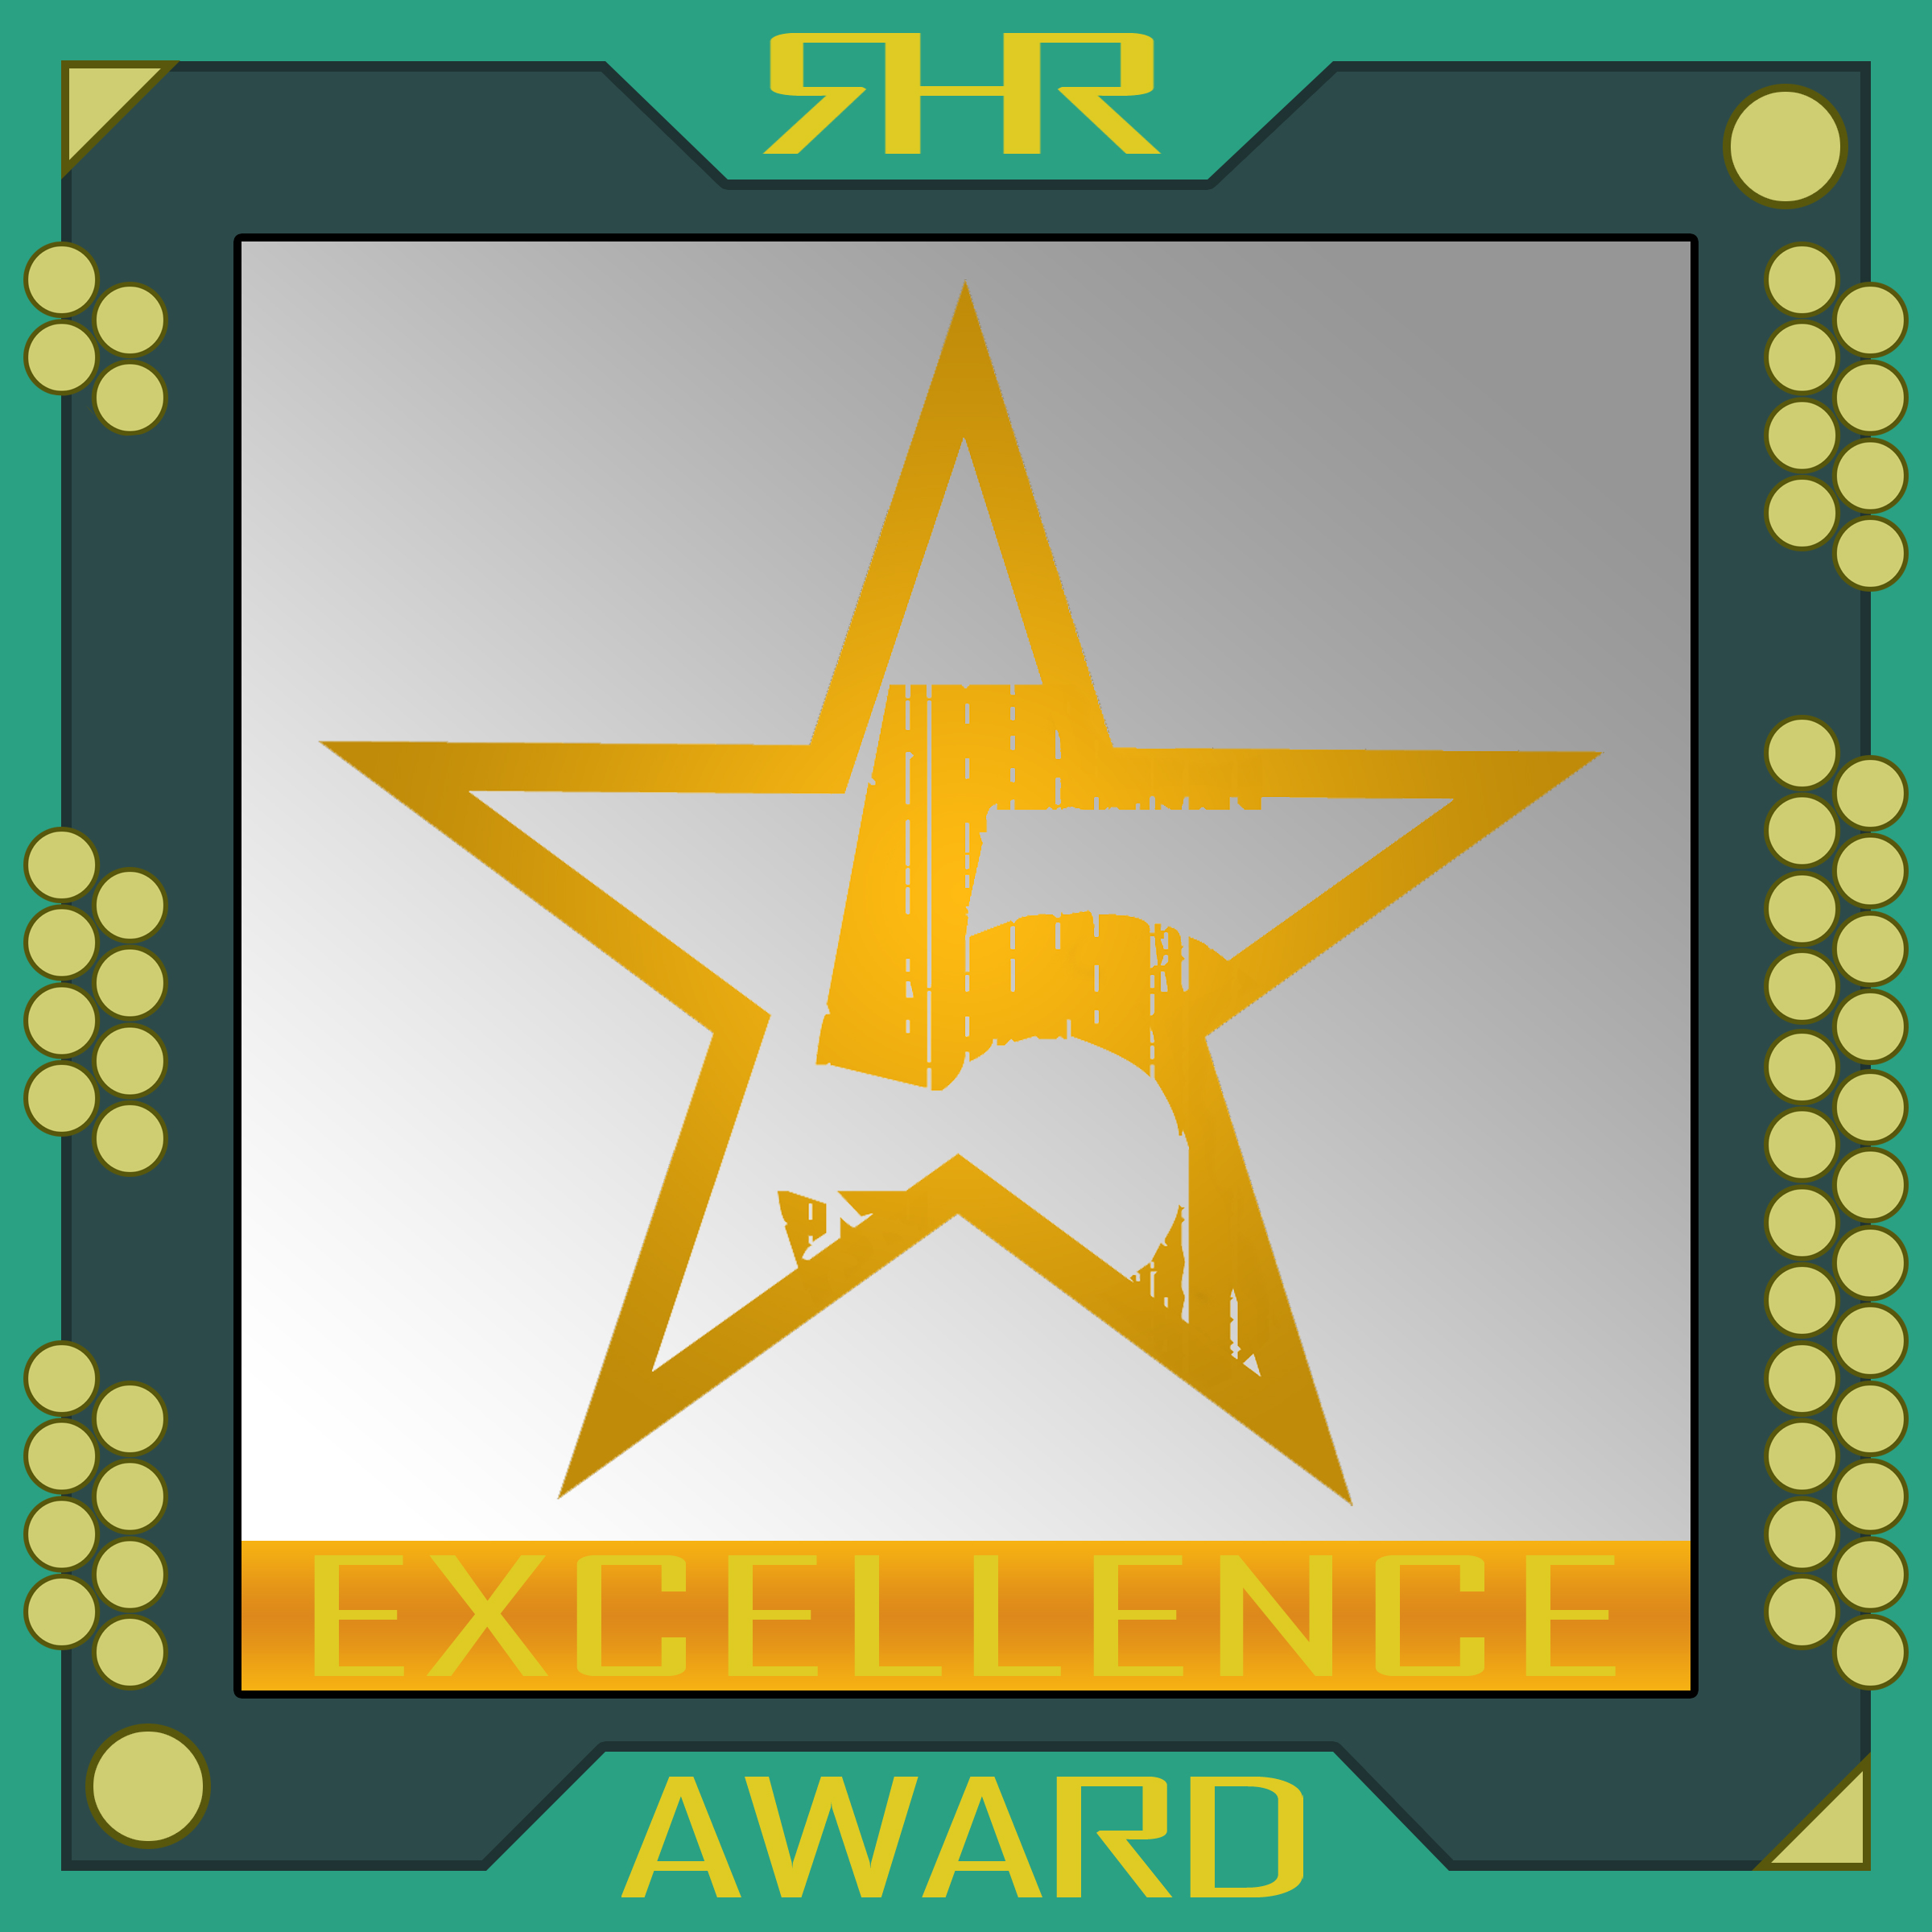 RHR Excellence Award - About Us